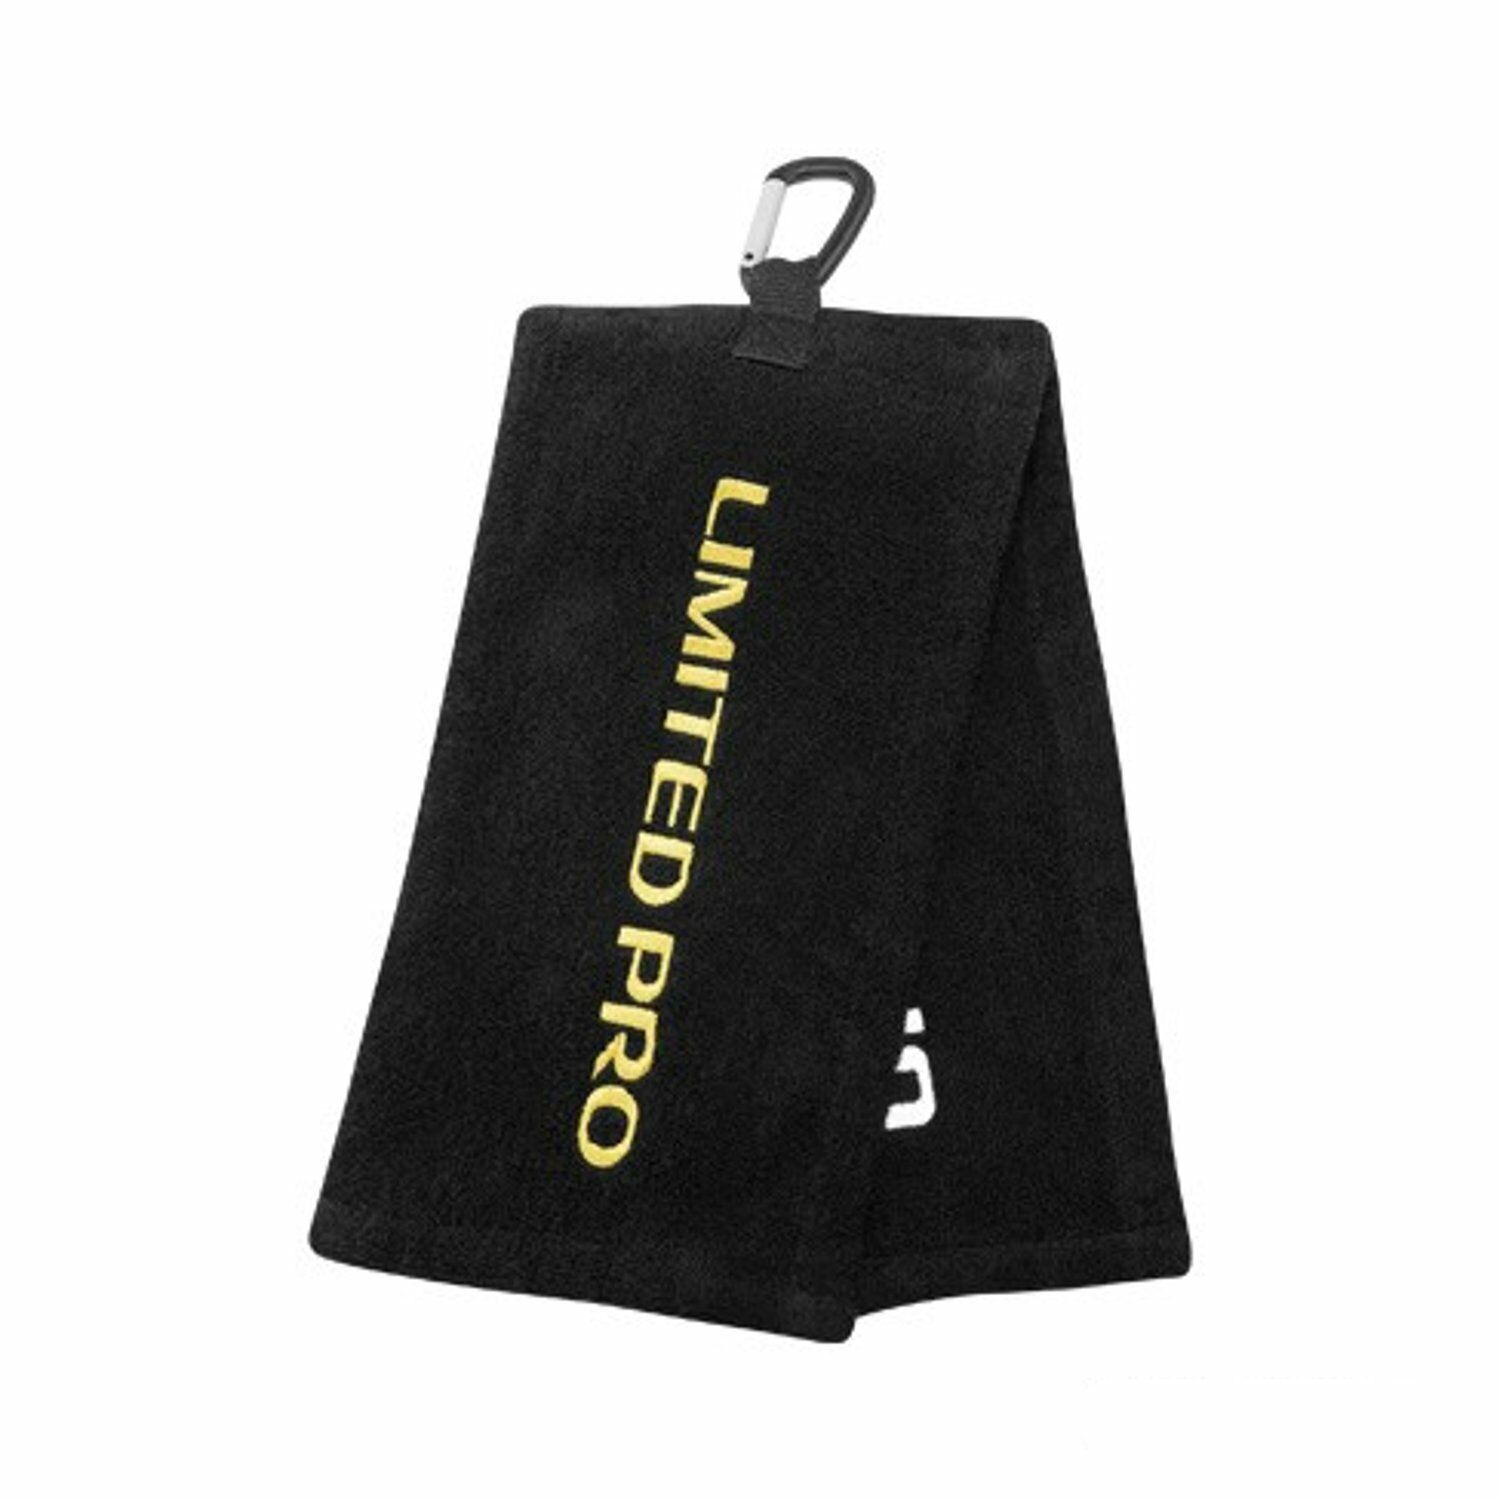 SHIMANO Fishing Towel Limited Pro AC-060P 60x15cm with Carabiner Japan F S NEW